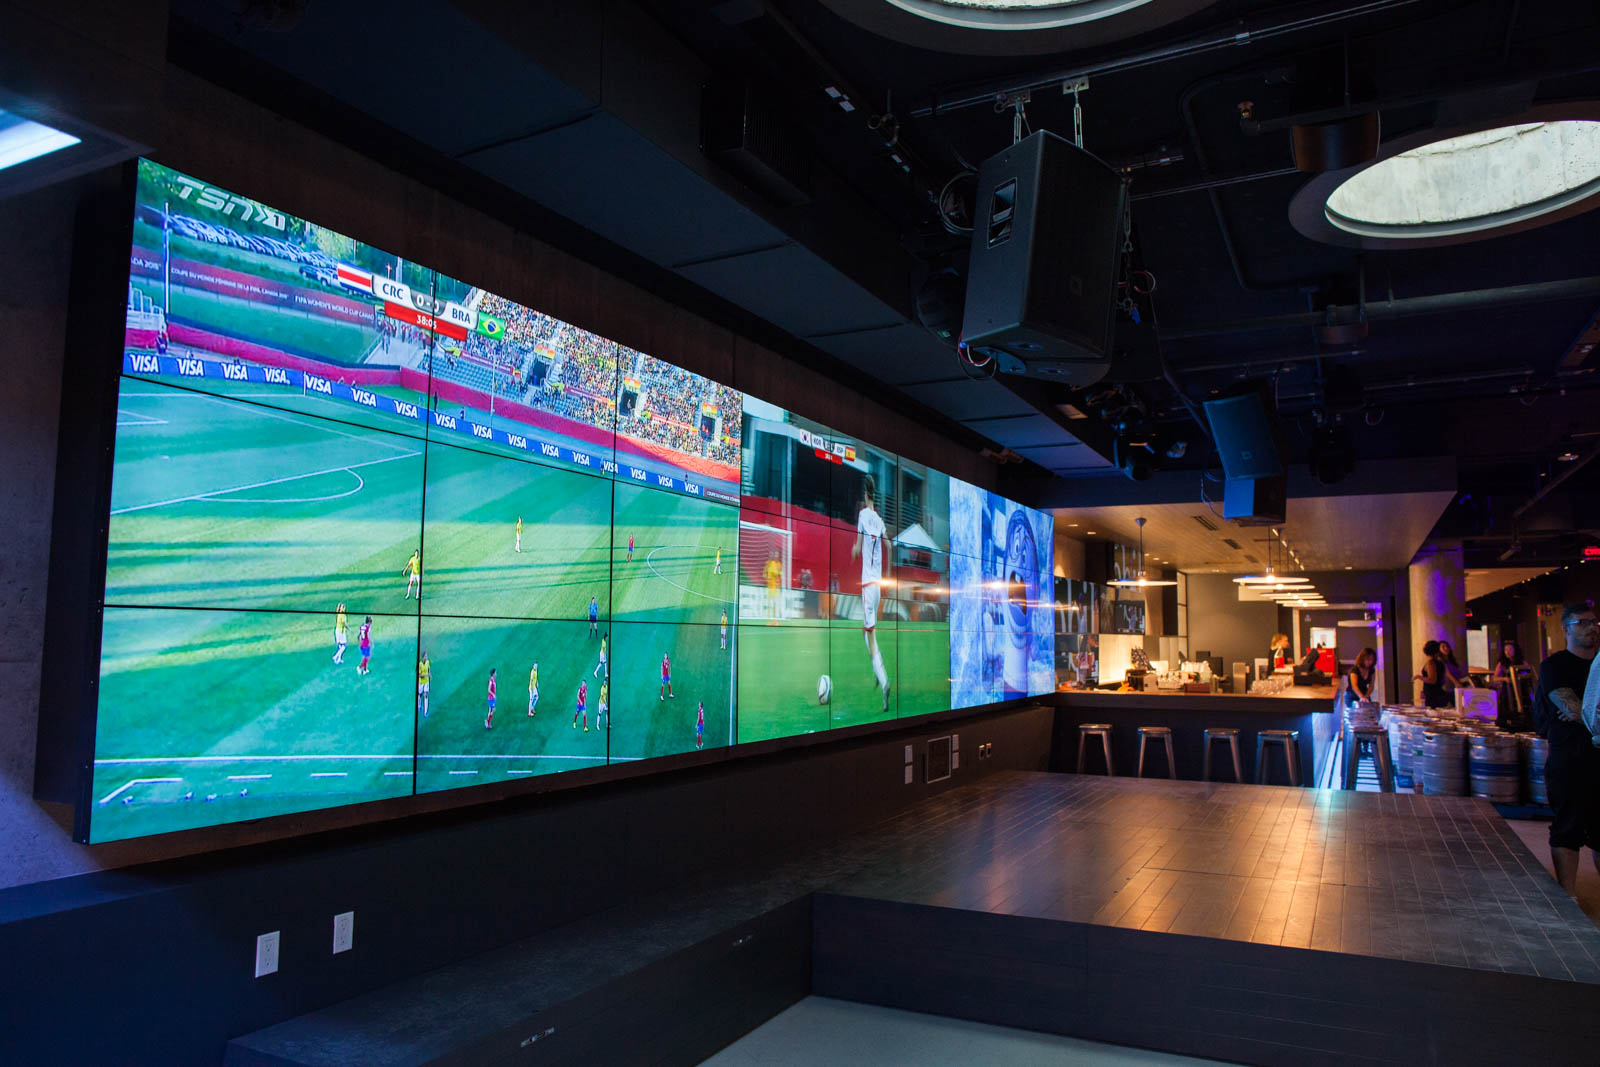 The Pit is hosting more viewings of sporting events to capitalize on the big screens.